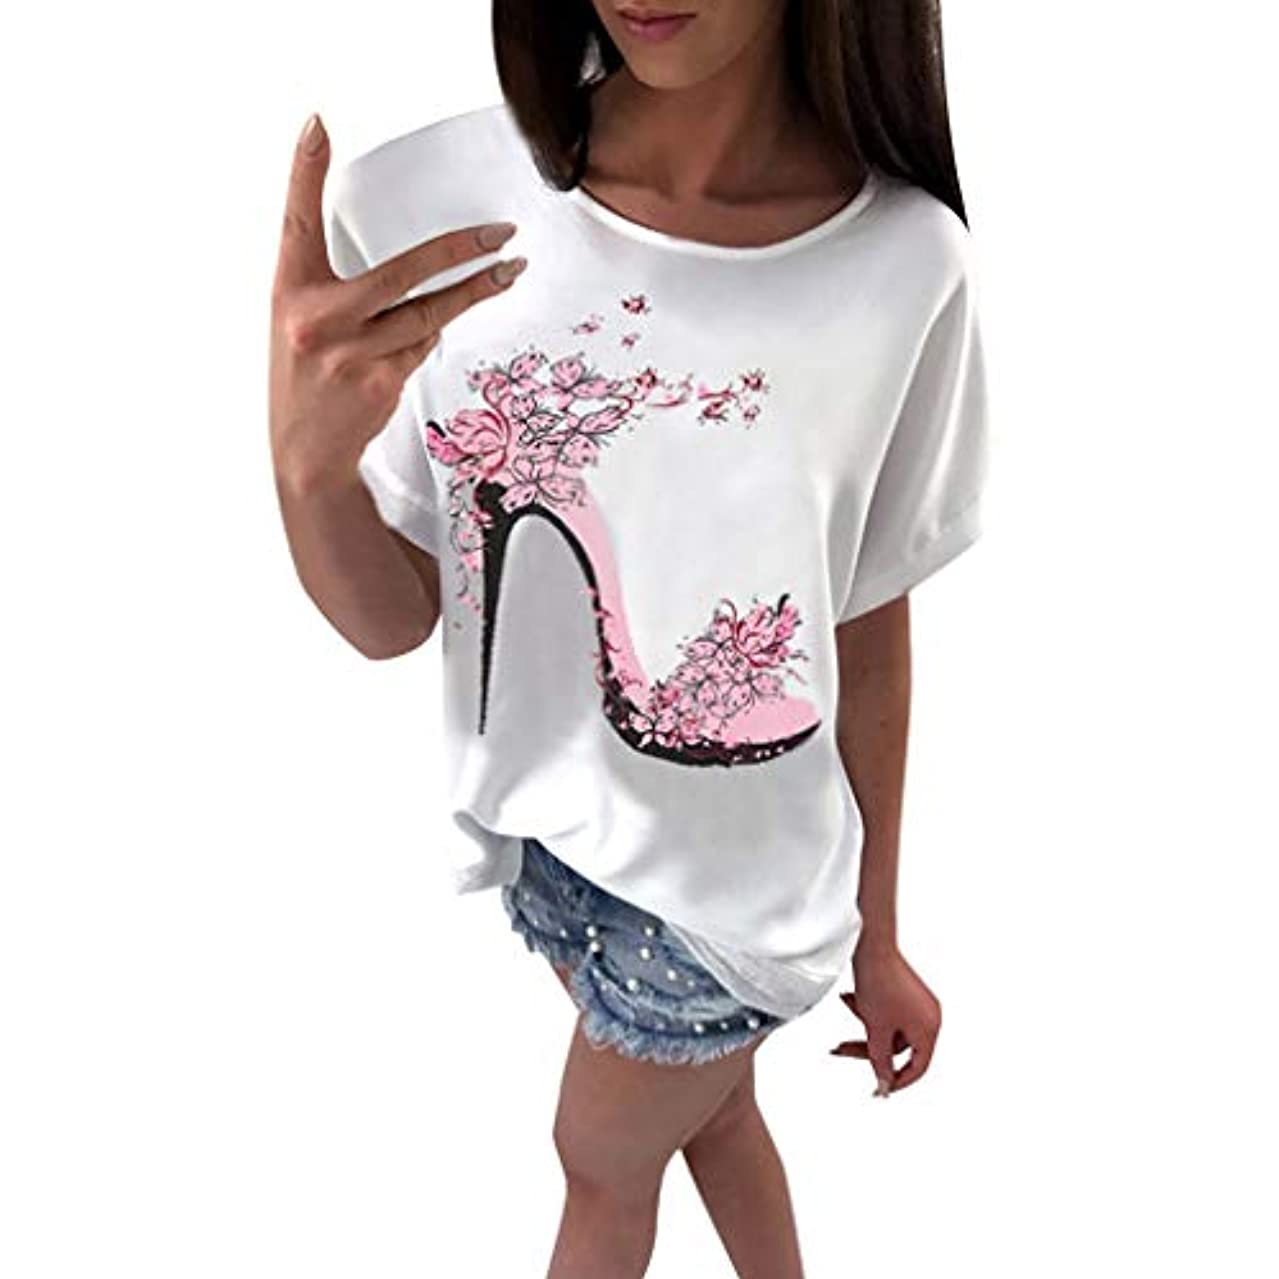 Sweatershirt Lips Print Causal Blouse Off The Shoulder Loose Pullover Plus Size Tops,Londony? Women Short Print T-Shirt